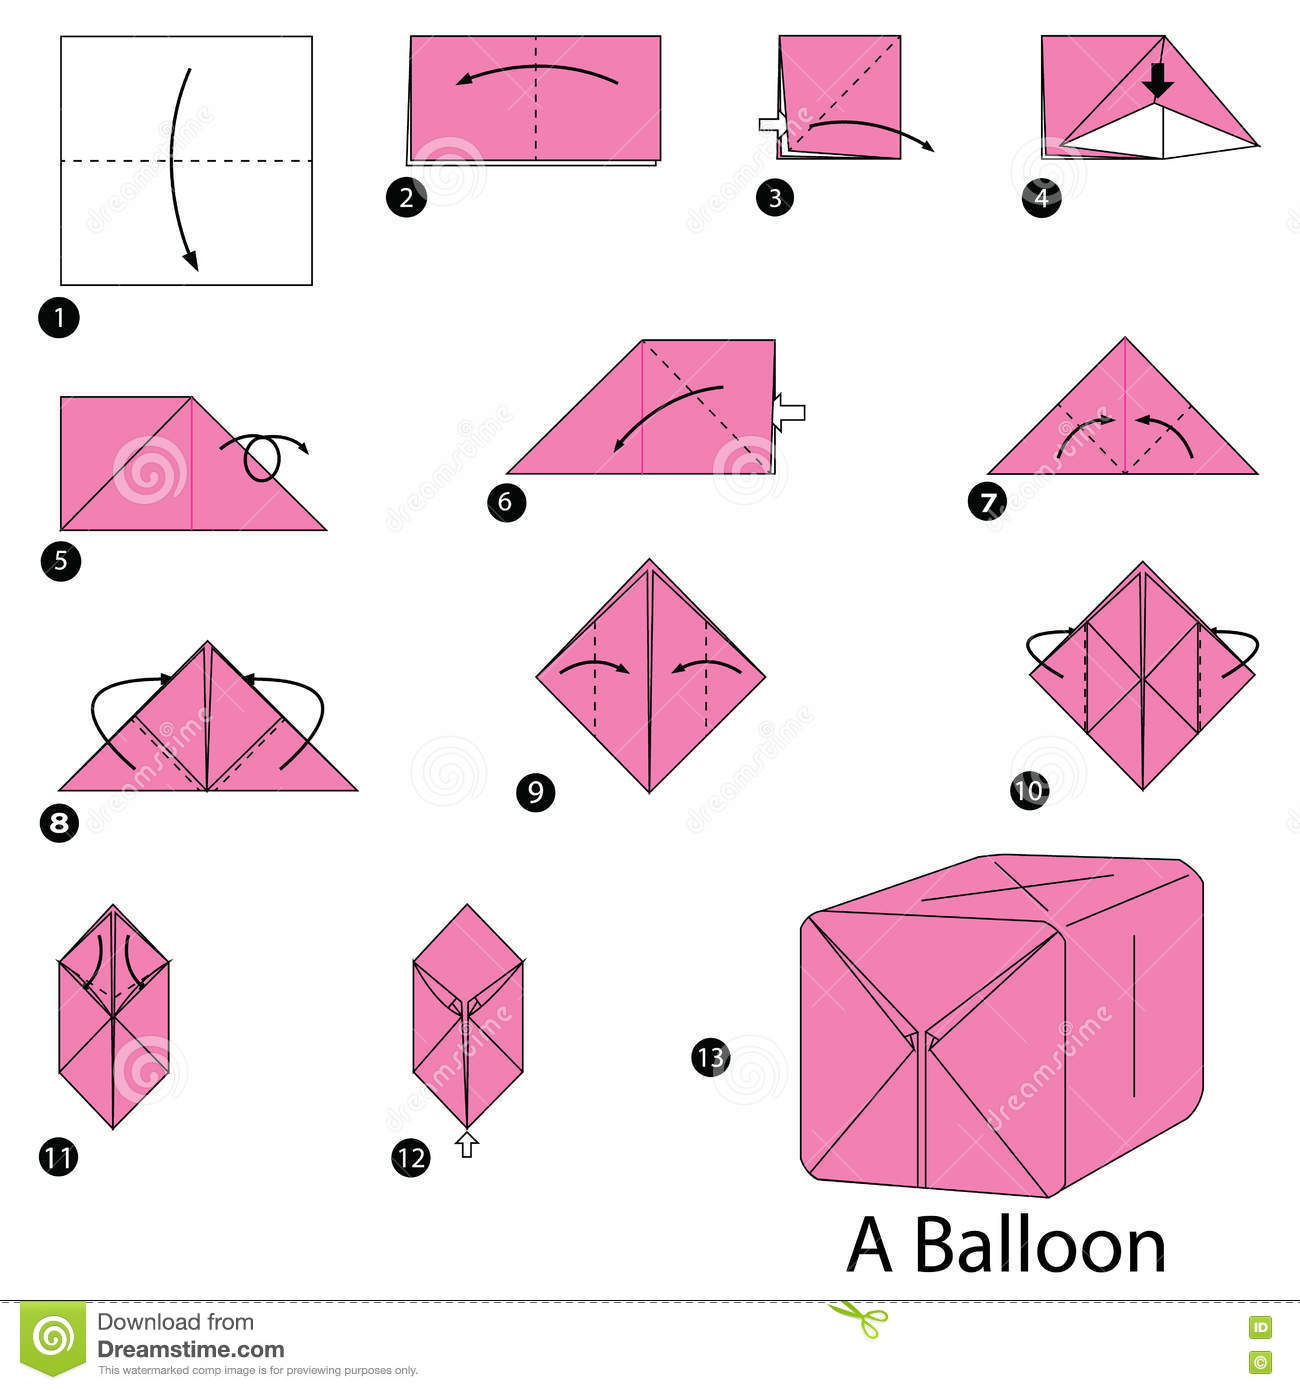 Easy Origami Instructions & Diagrams | Origami Guide